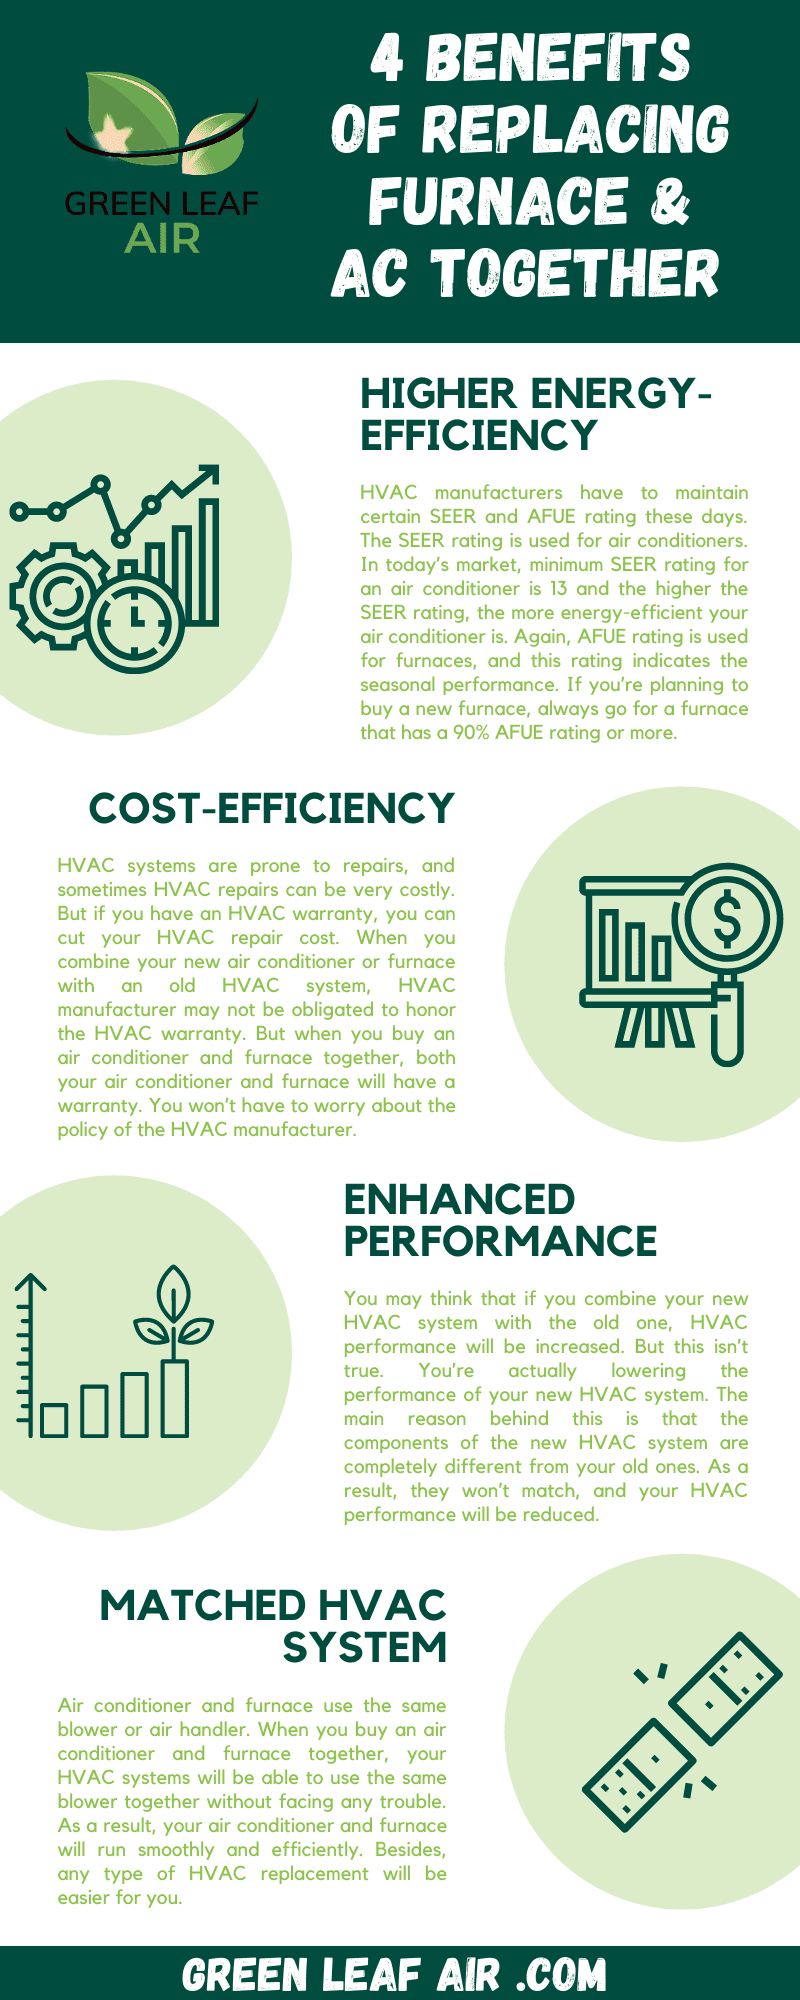 4 Benefits of Replacing Furnace & AC Together